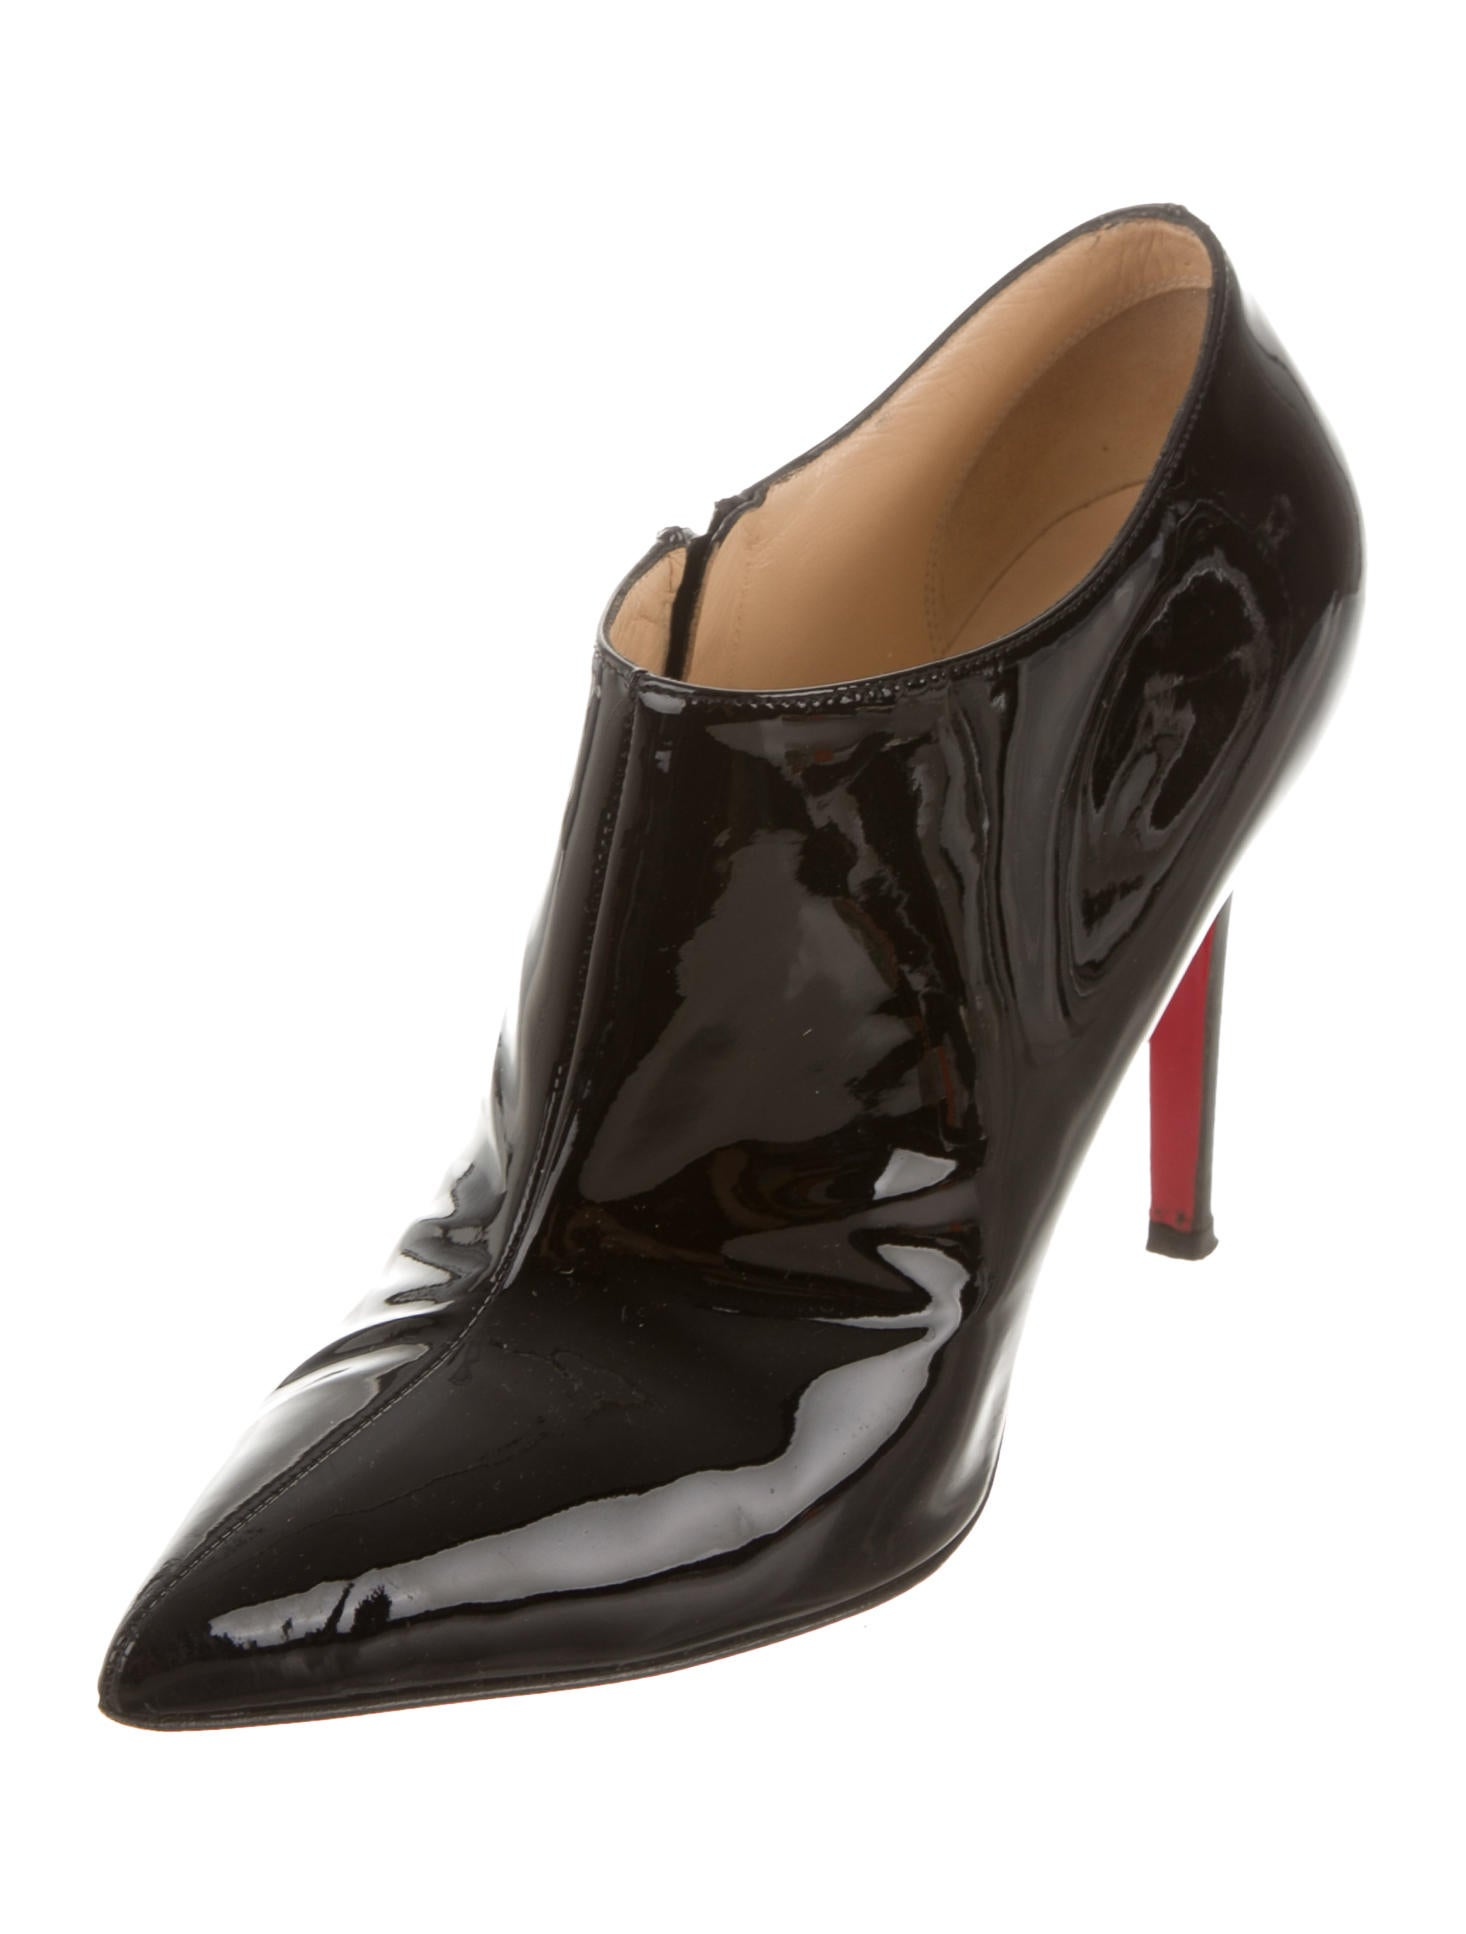 Christian Louboutin Patent Leather Pointed Toe Booties